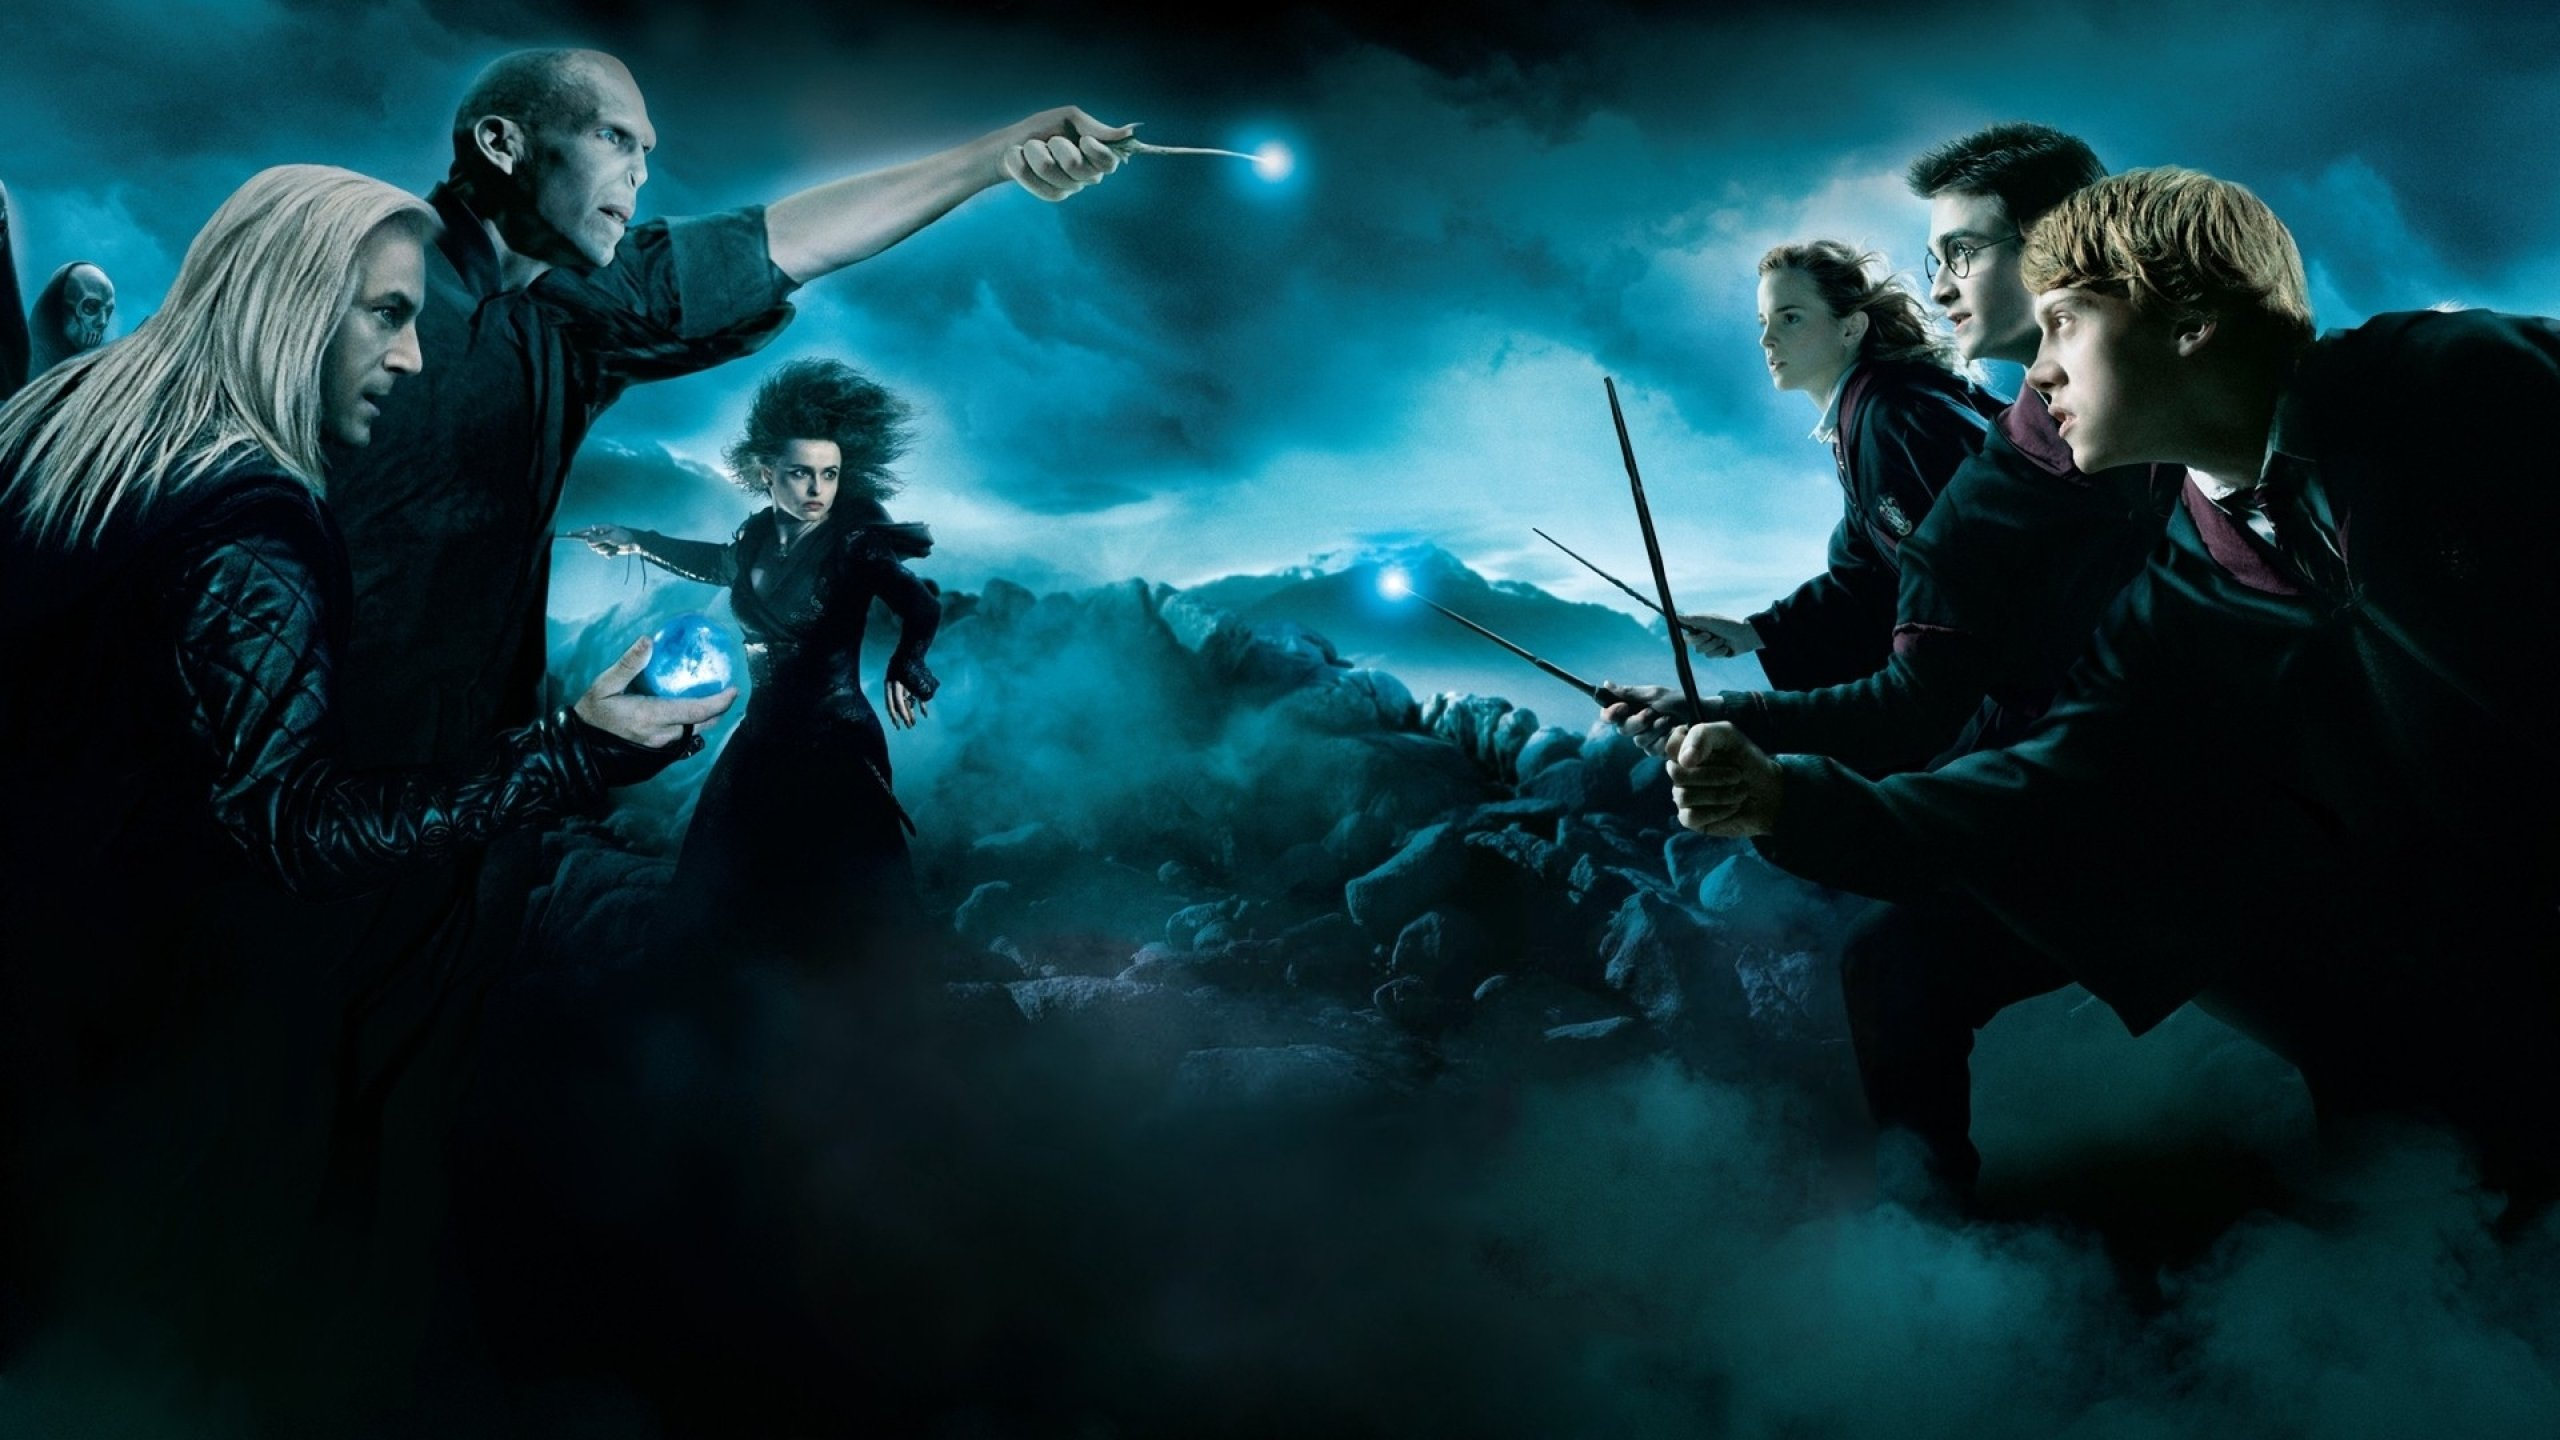 Wallpapers Harry Potter Harry Potter Free Hd Wallpapers Free Download Hd Wallpaper